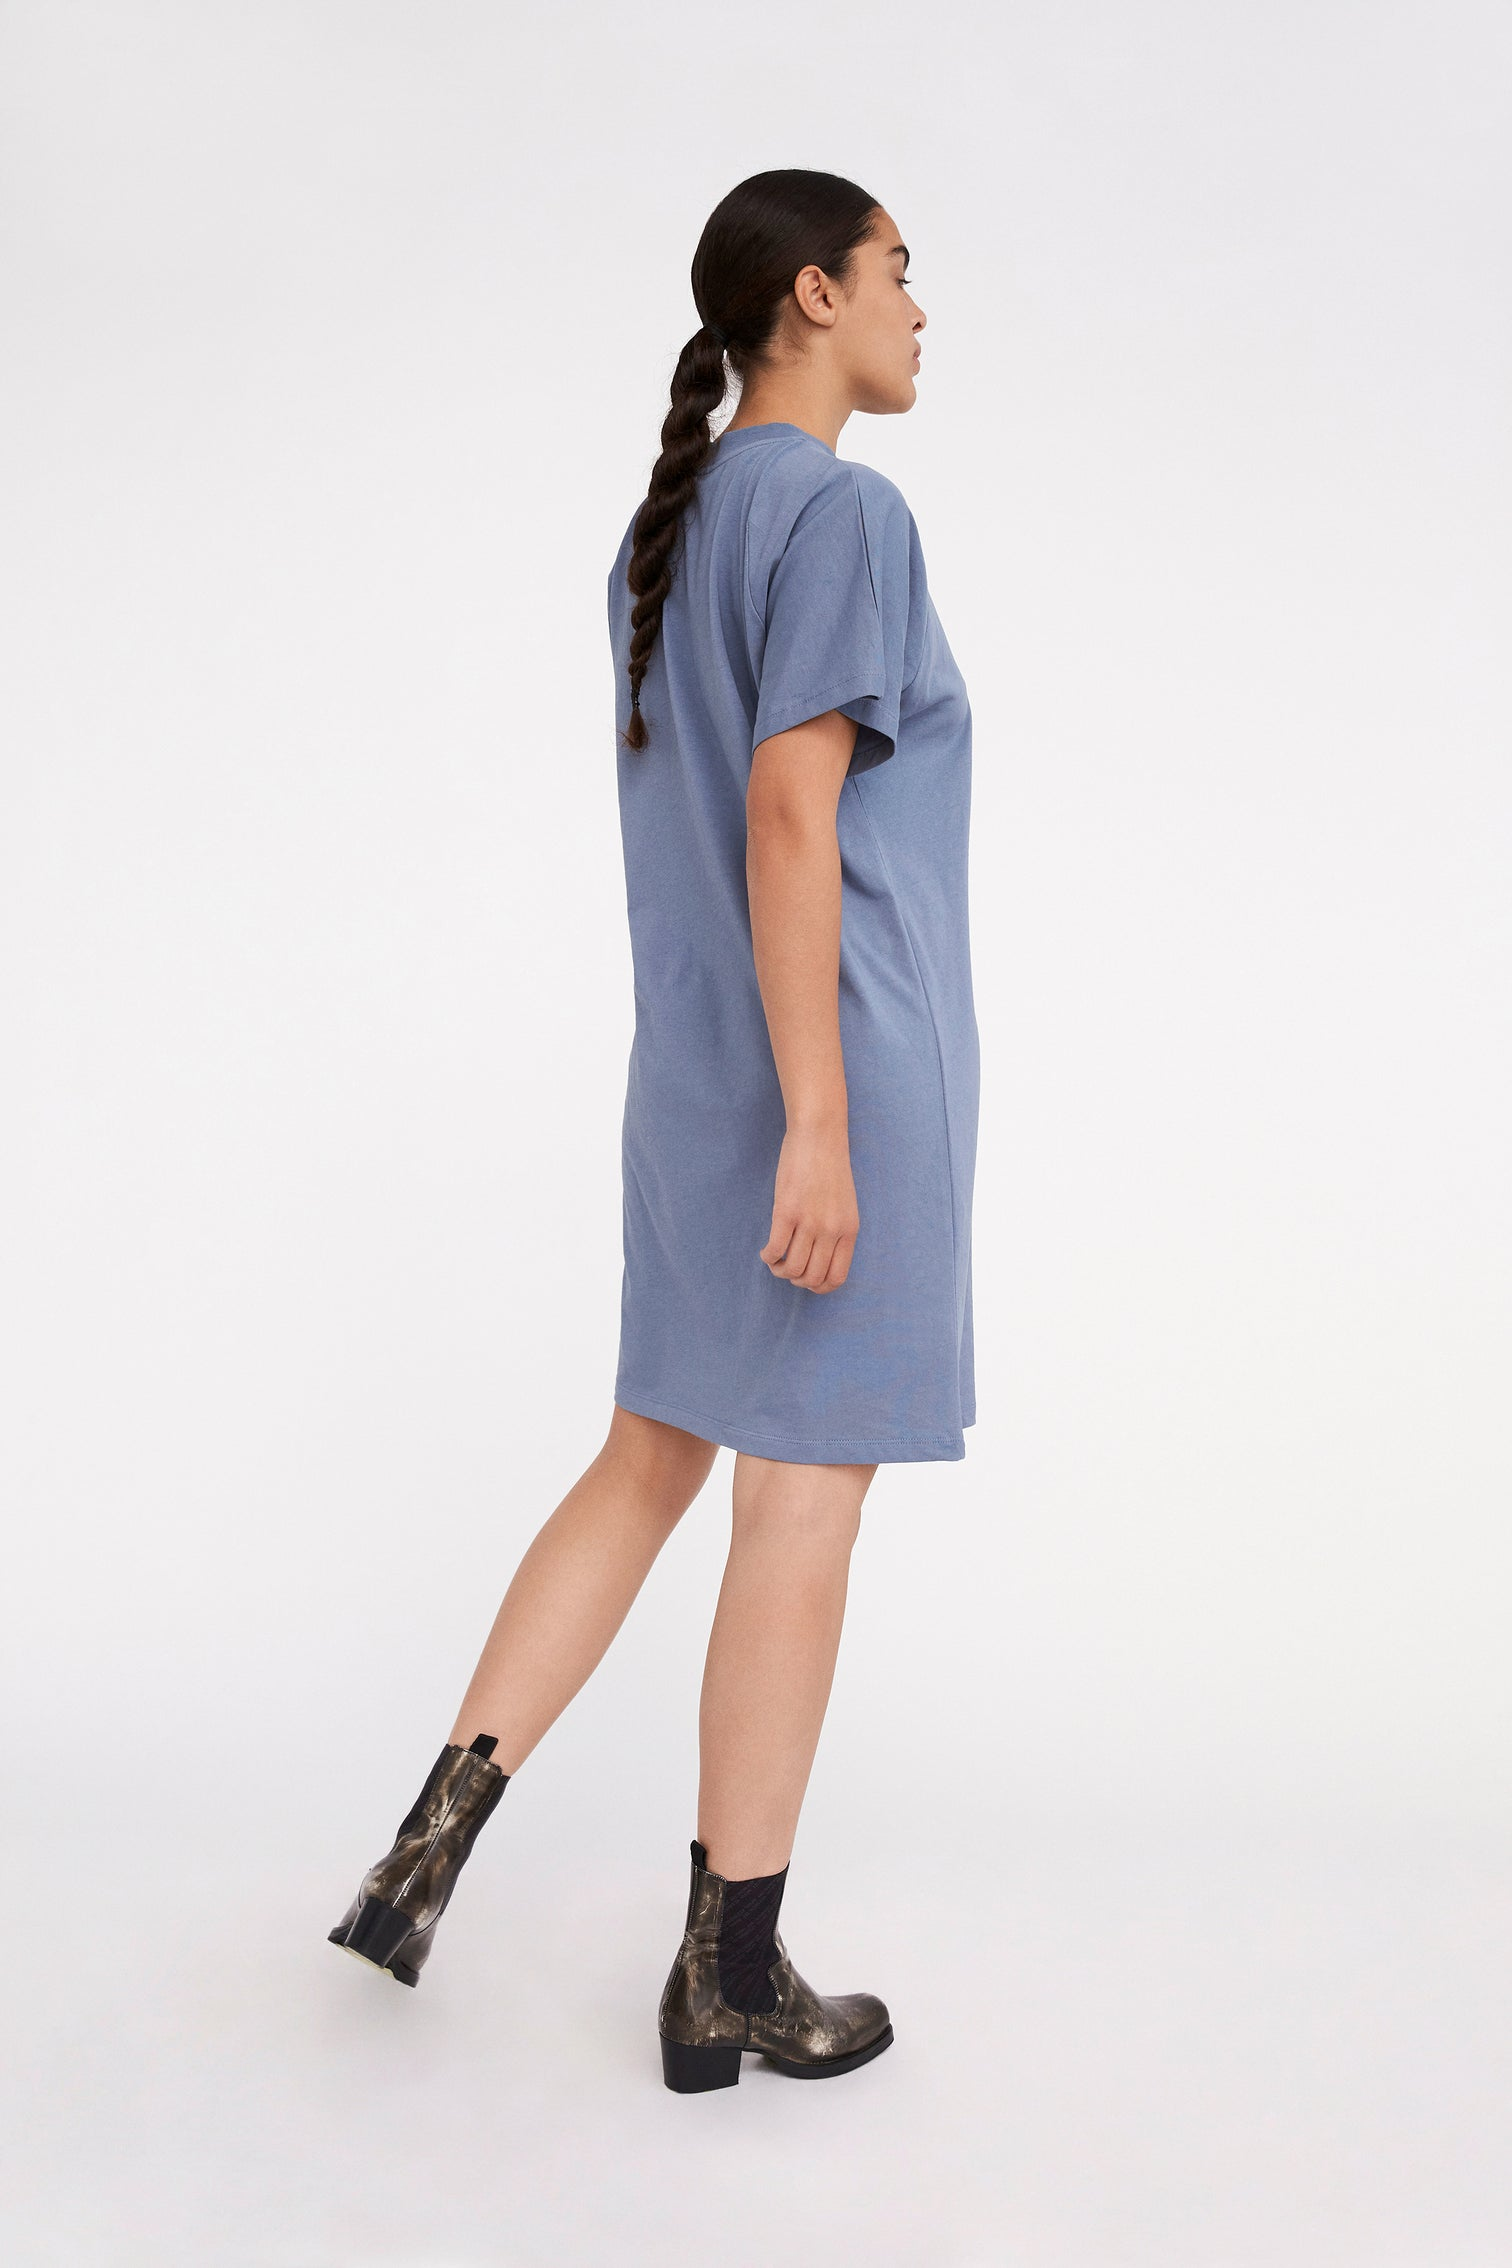 Won Hundred Women Brooklyn Dress Dress Flint Stone